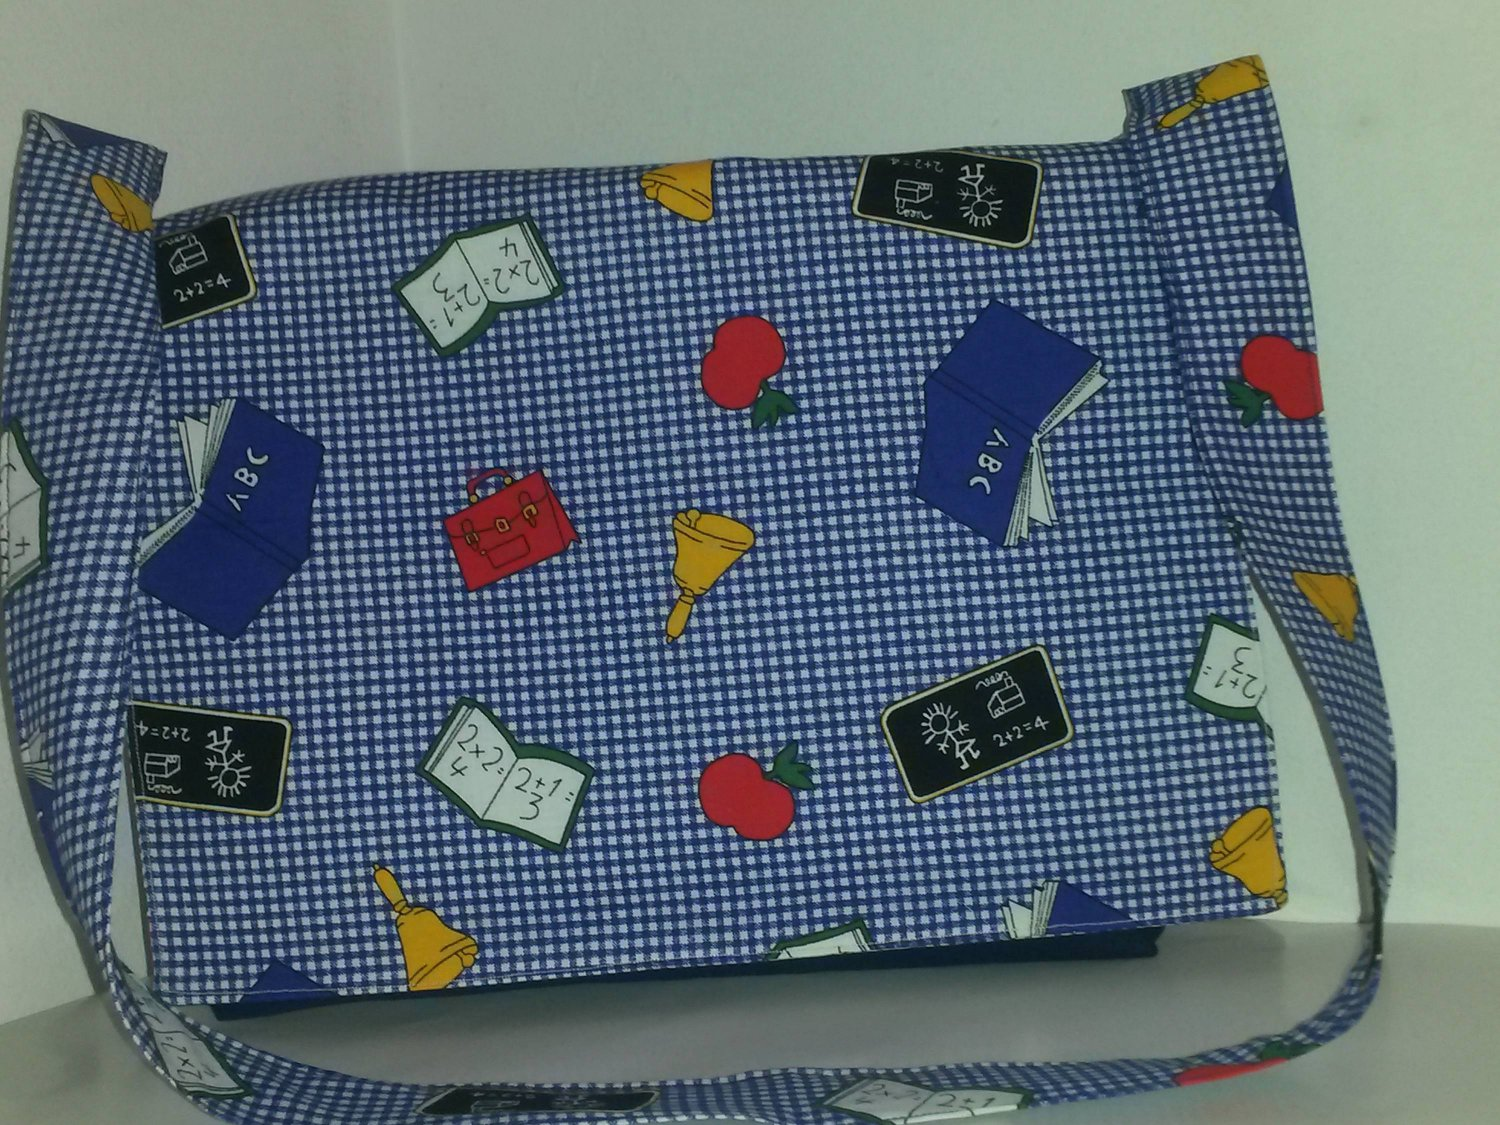 ABC, Blue Gingham, Go To School Cotton Tote Bag